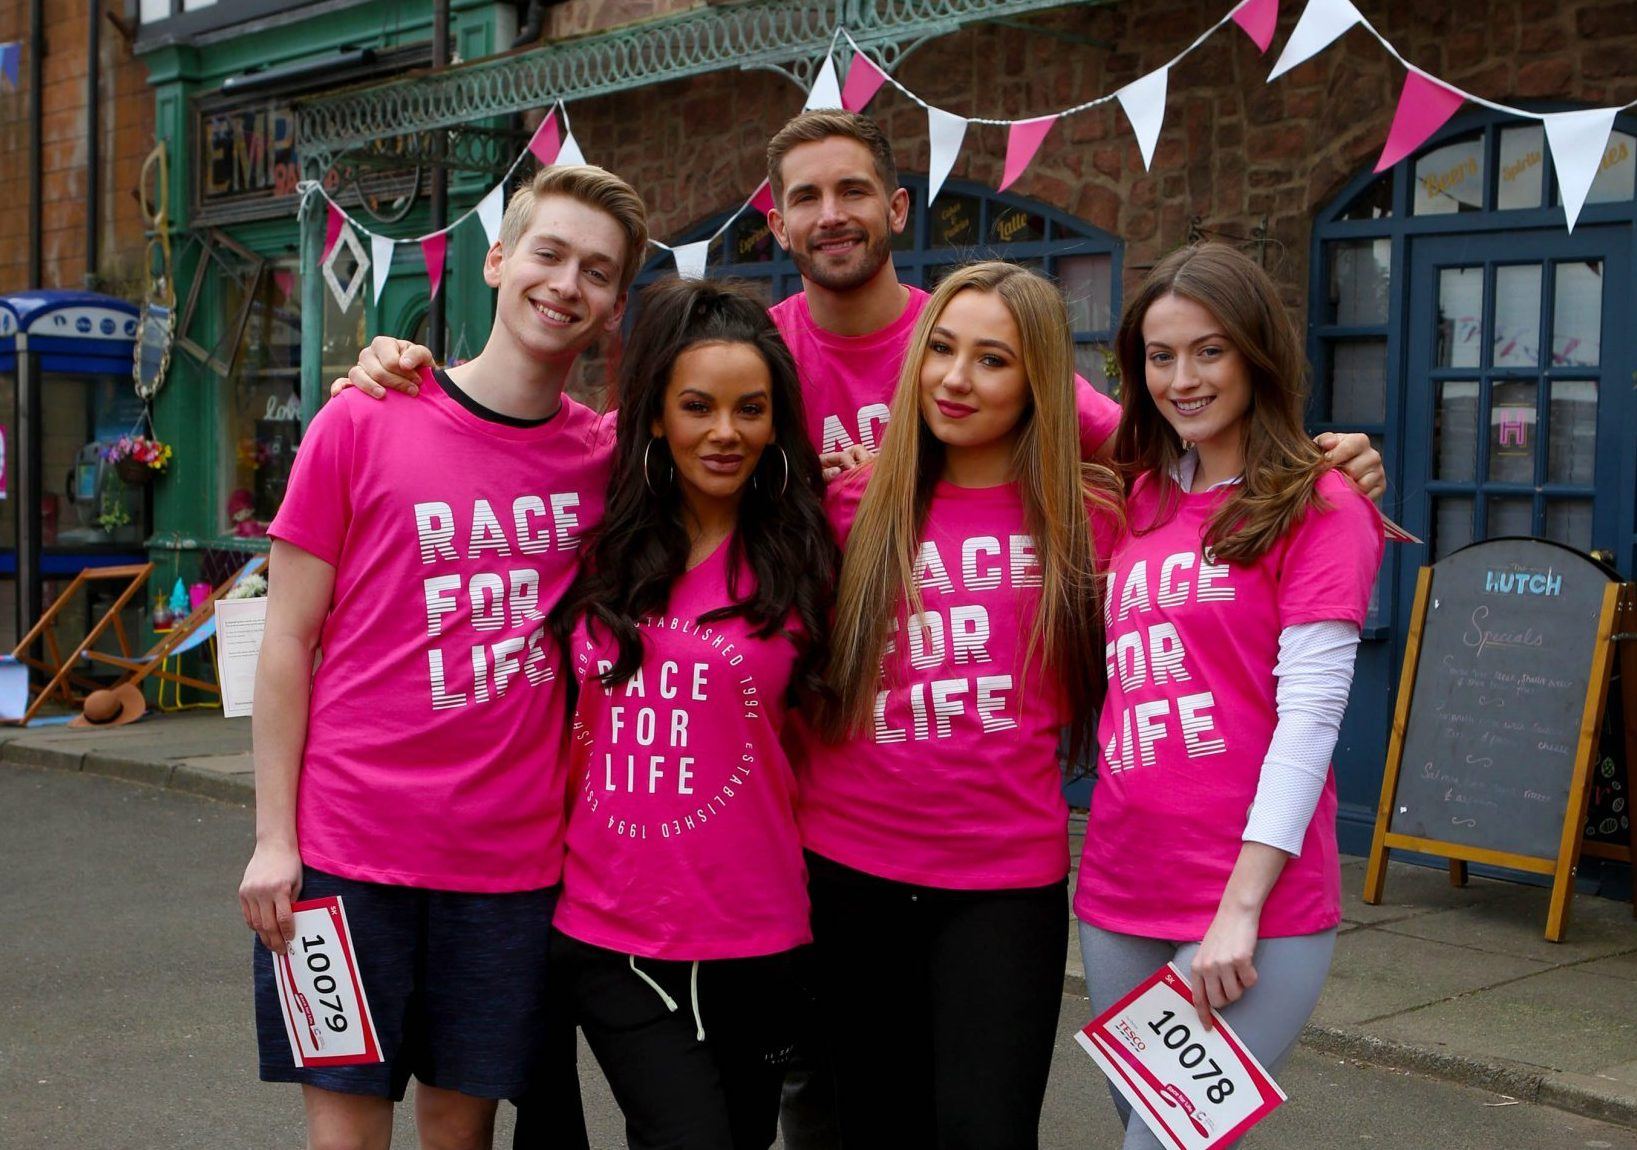 The Hollyoaks cast, including Lauren McQueen, united to take part in Race For Life